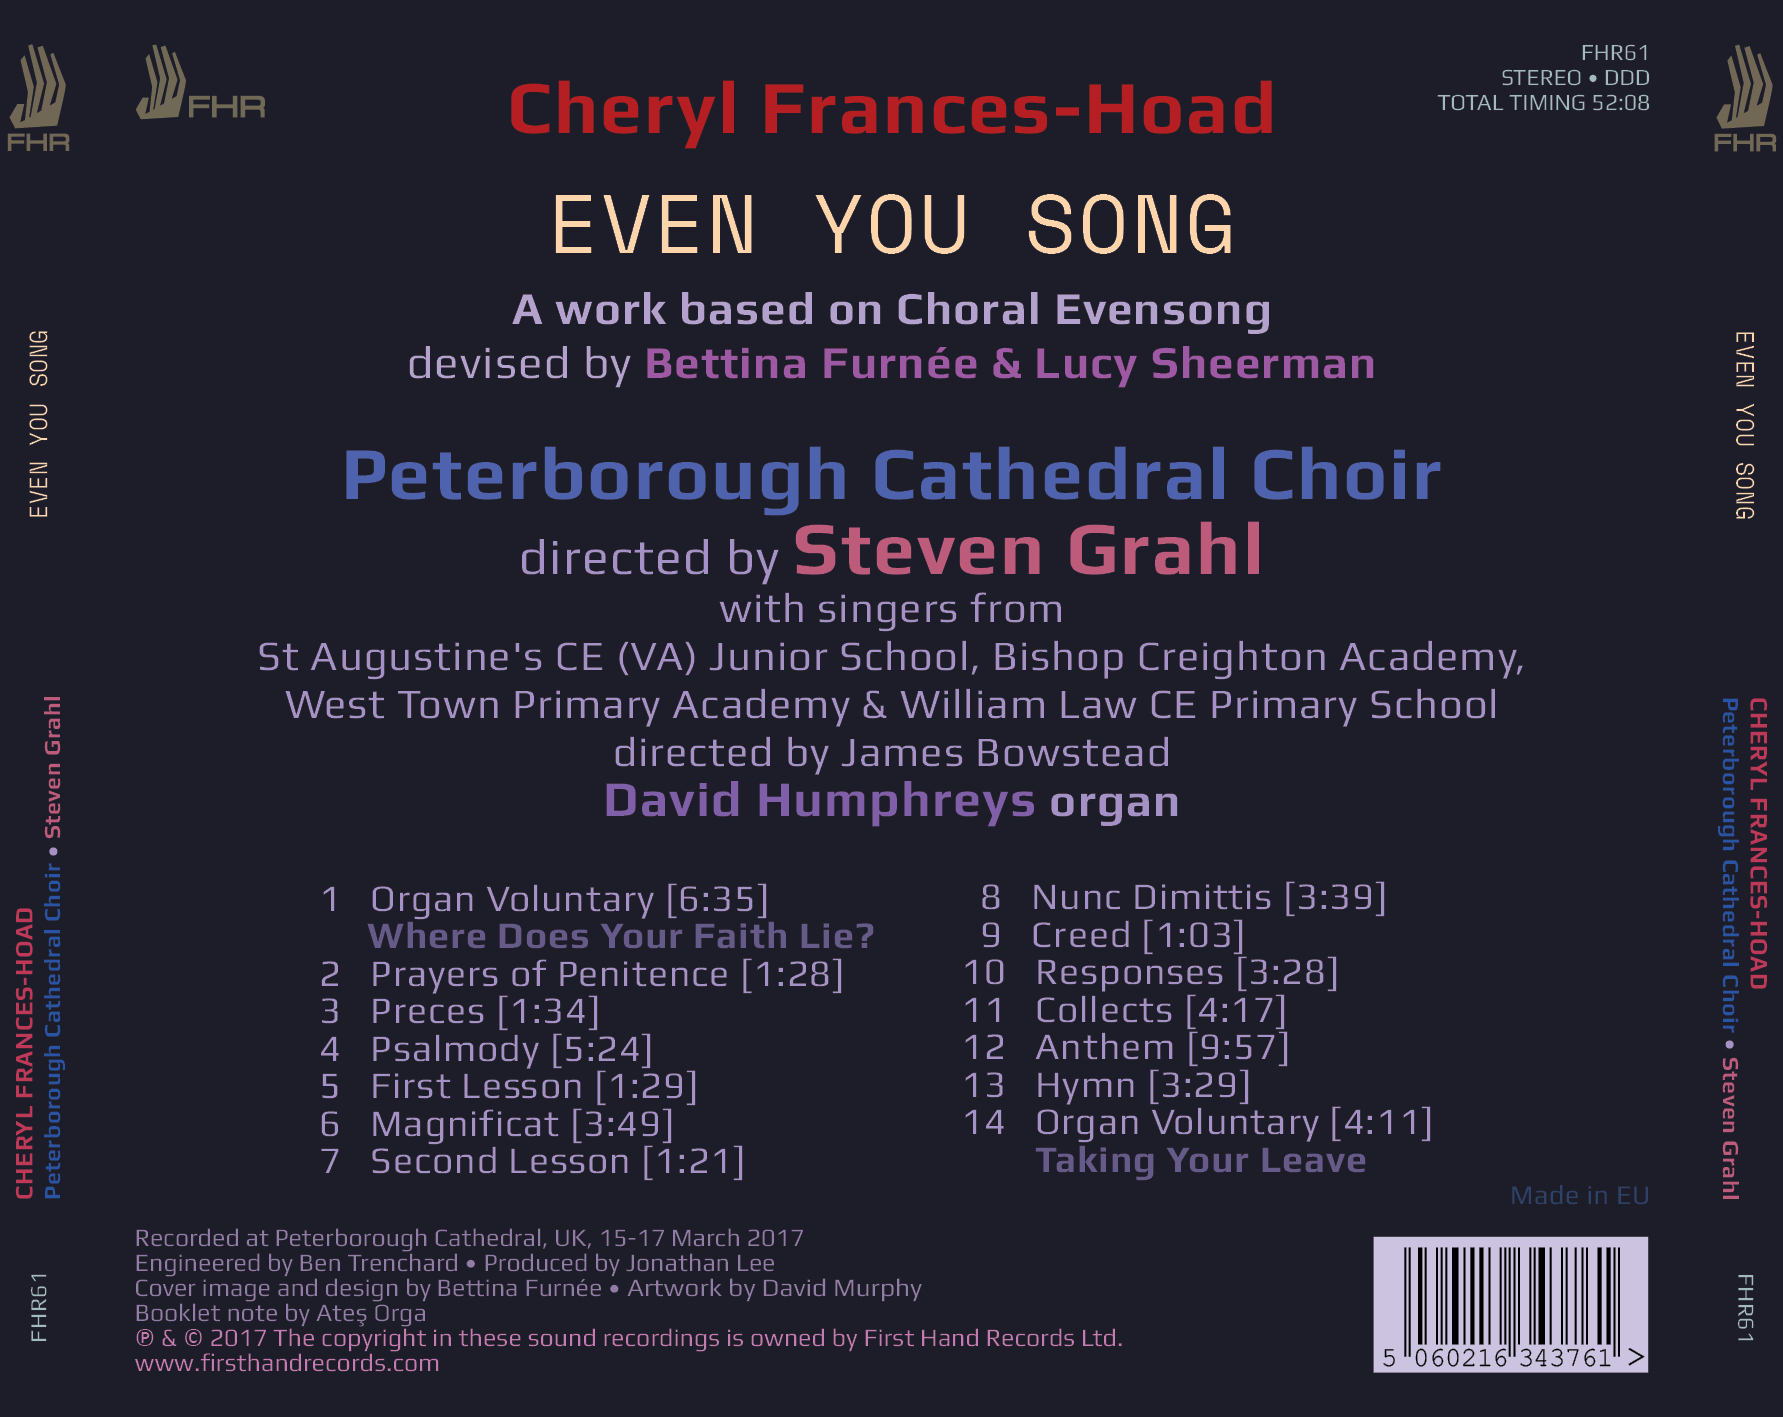 FRANCES-HOAD: Even You Song (Peterborough Cathedral Choir)